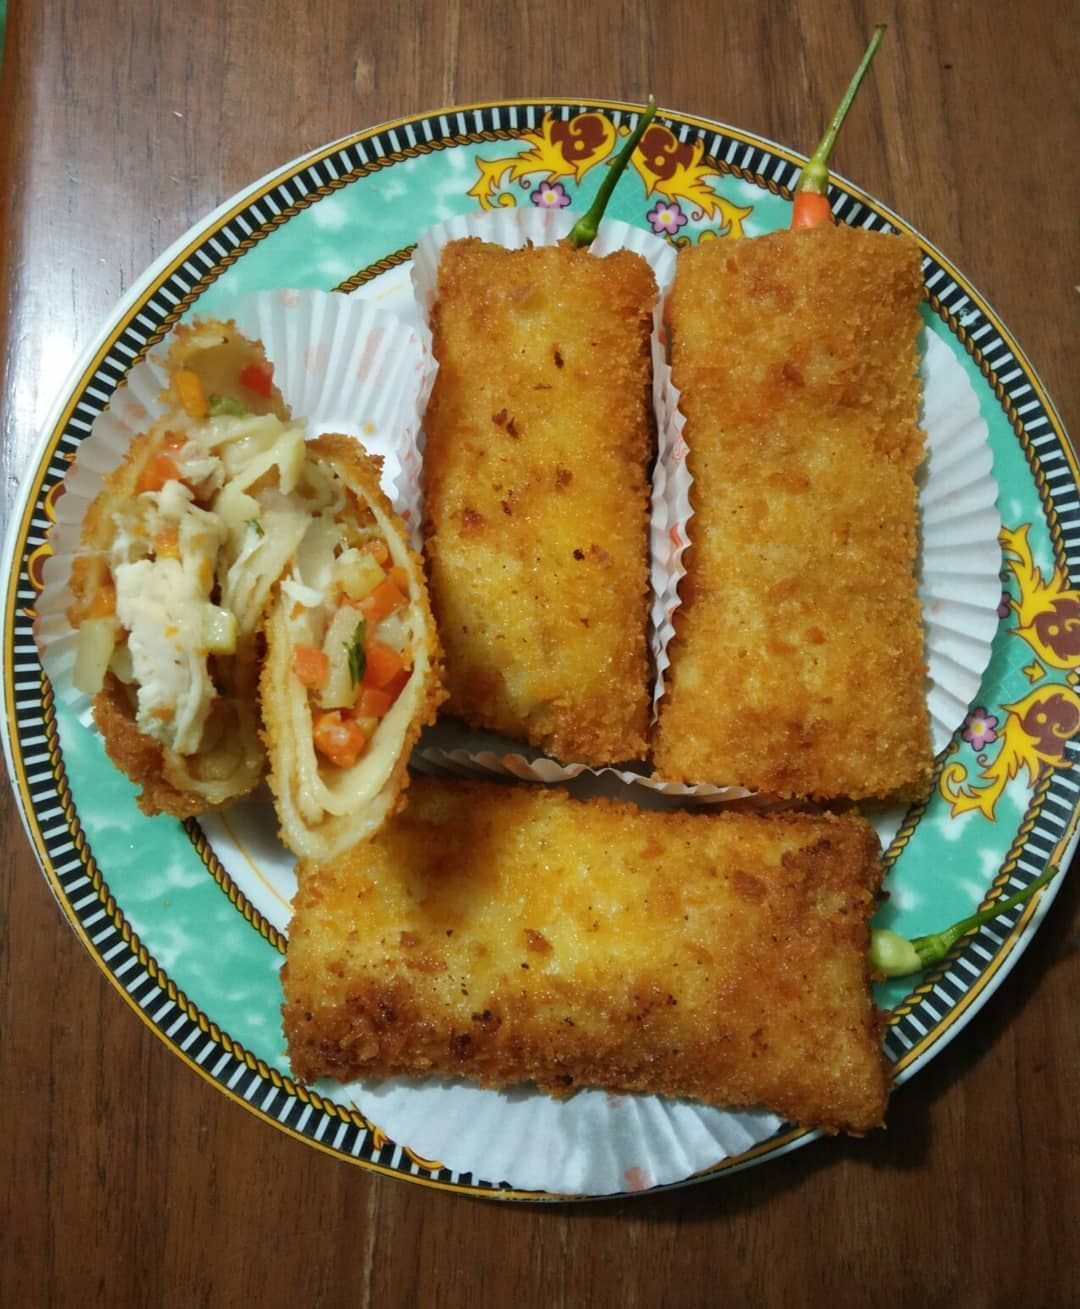 You Know Its So Yummmyyy Hii My Happy Tummy You Know Its So Yummmyyy Hii My Happy Tummy Risoles Food Happy Cooking Hobbyma Happy Cook Food Cooking